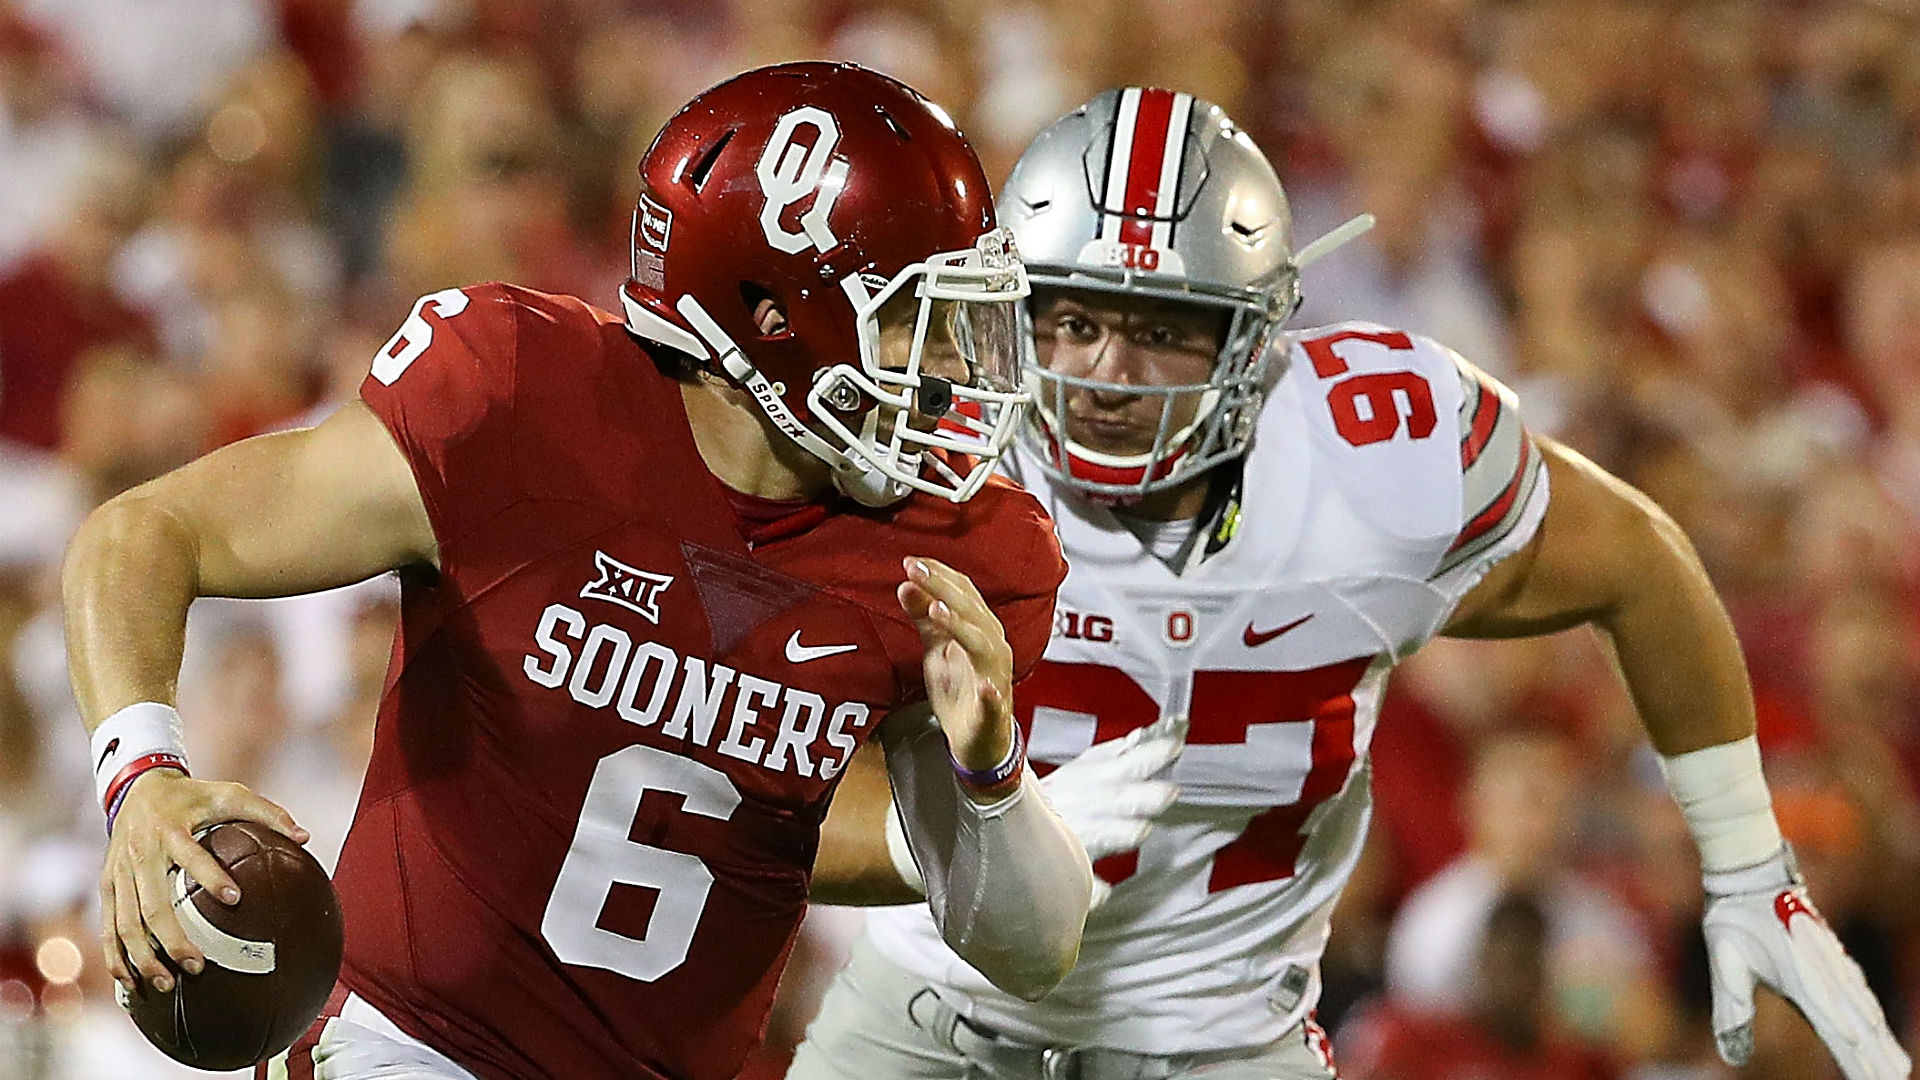 Oklahoma-Mayfield-Ohio State-Getty-ftr.jpg